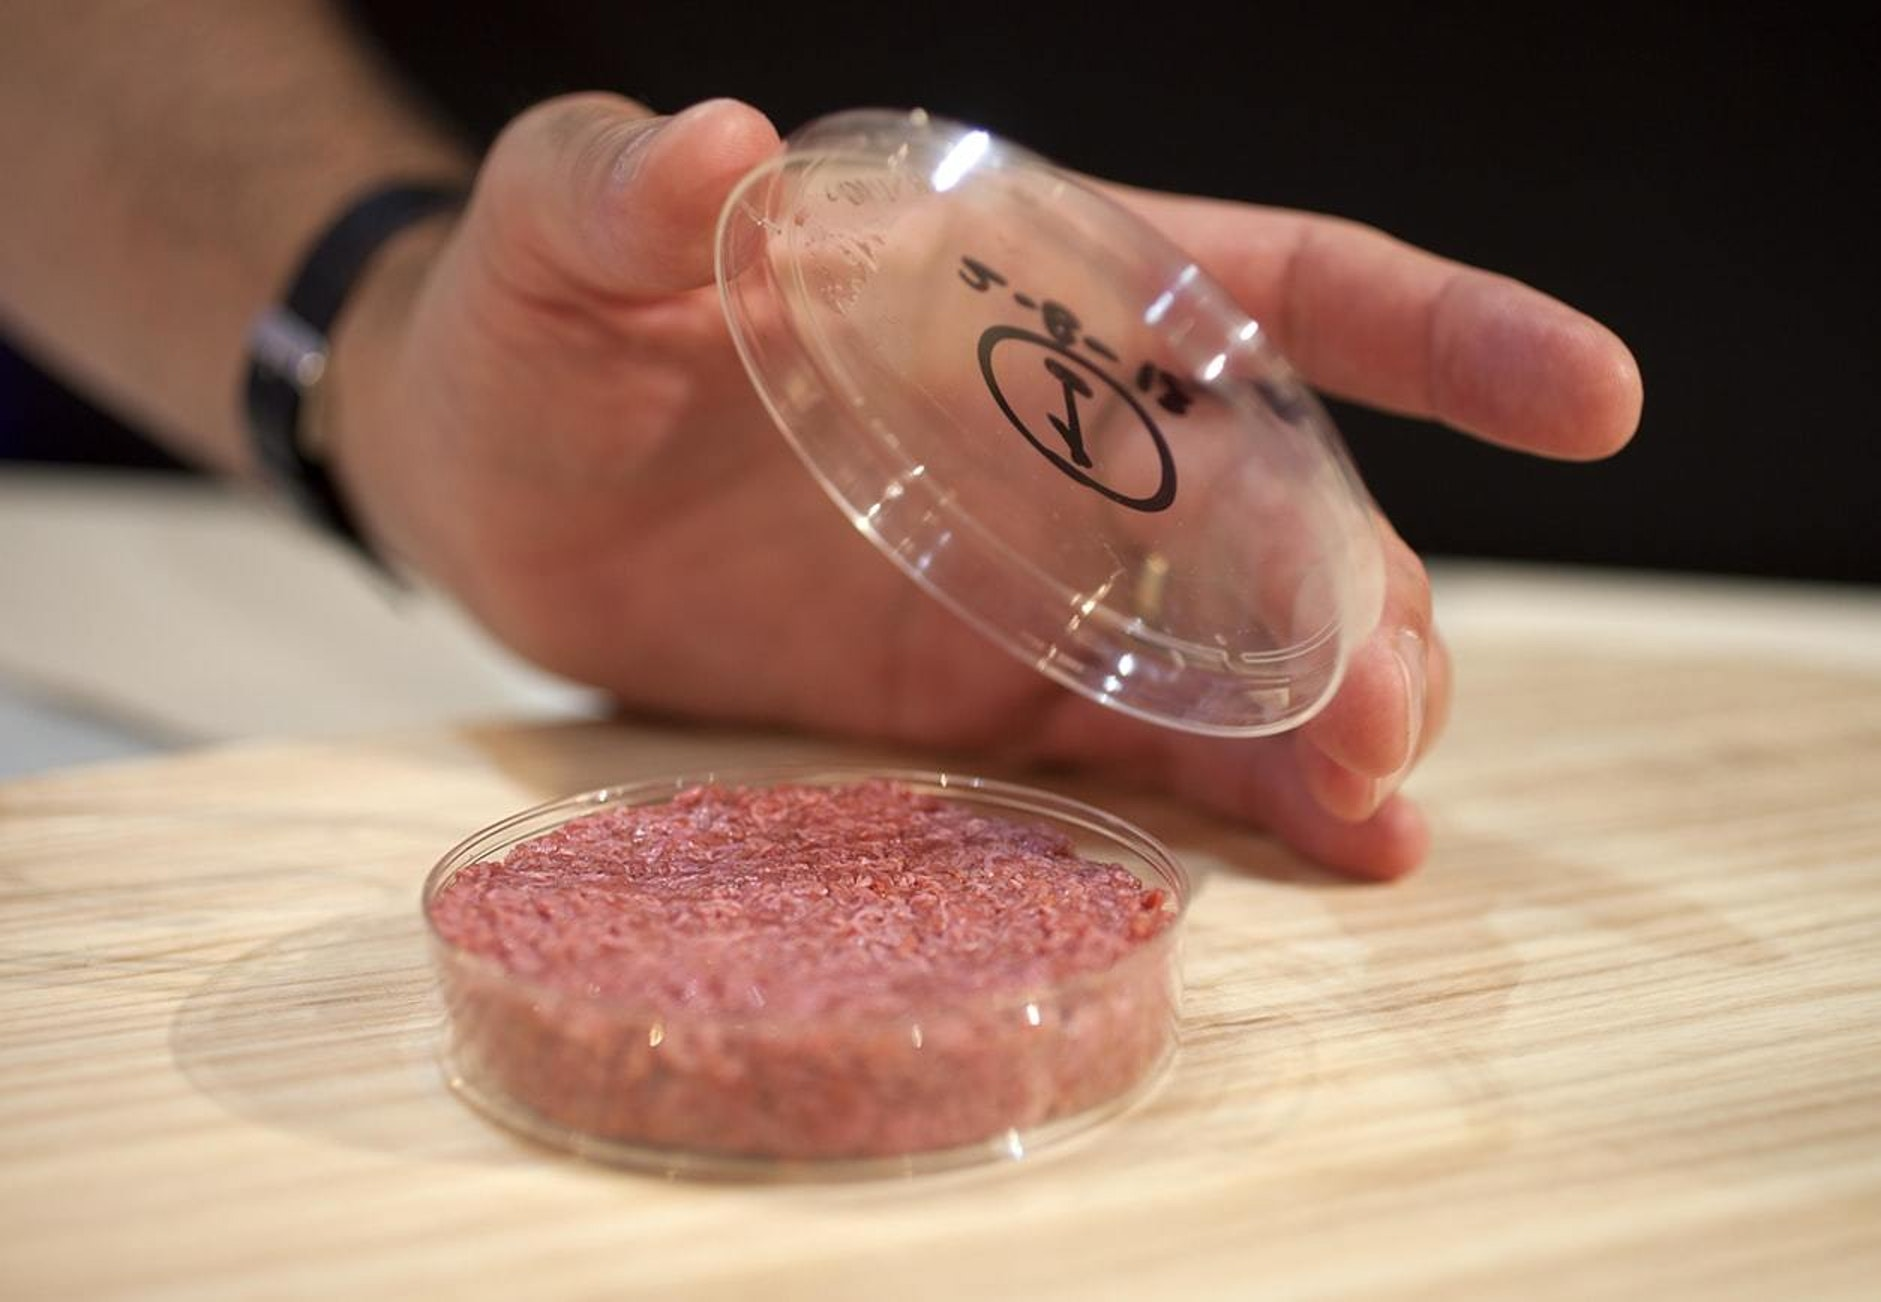 A burger grown in a petri dish using cow muscle stem cells.